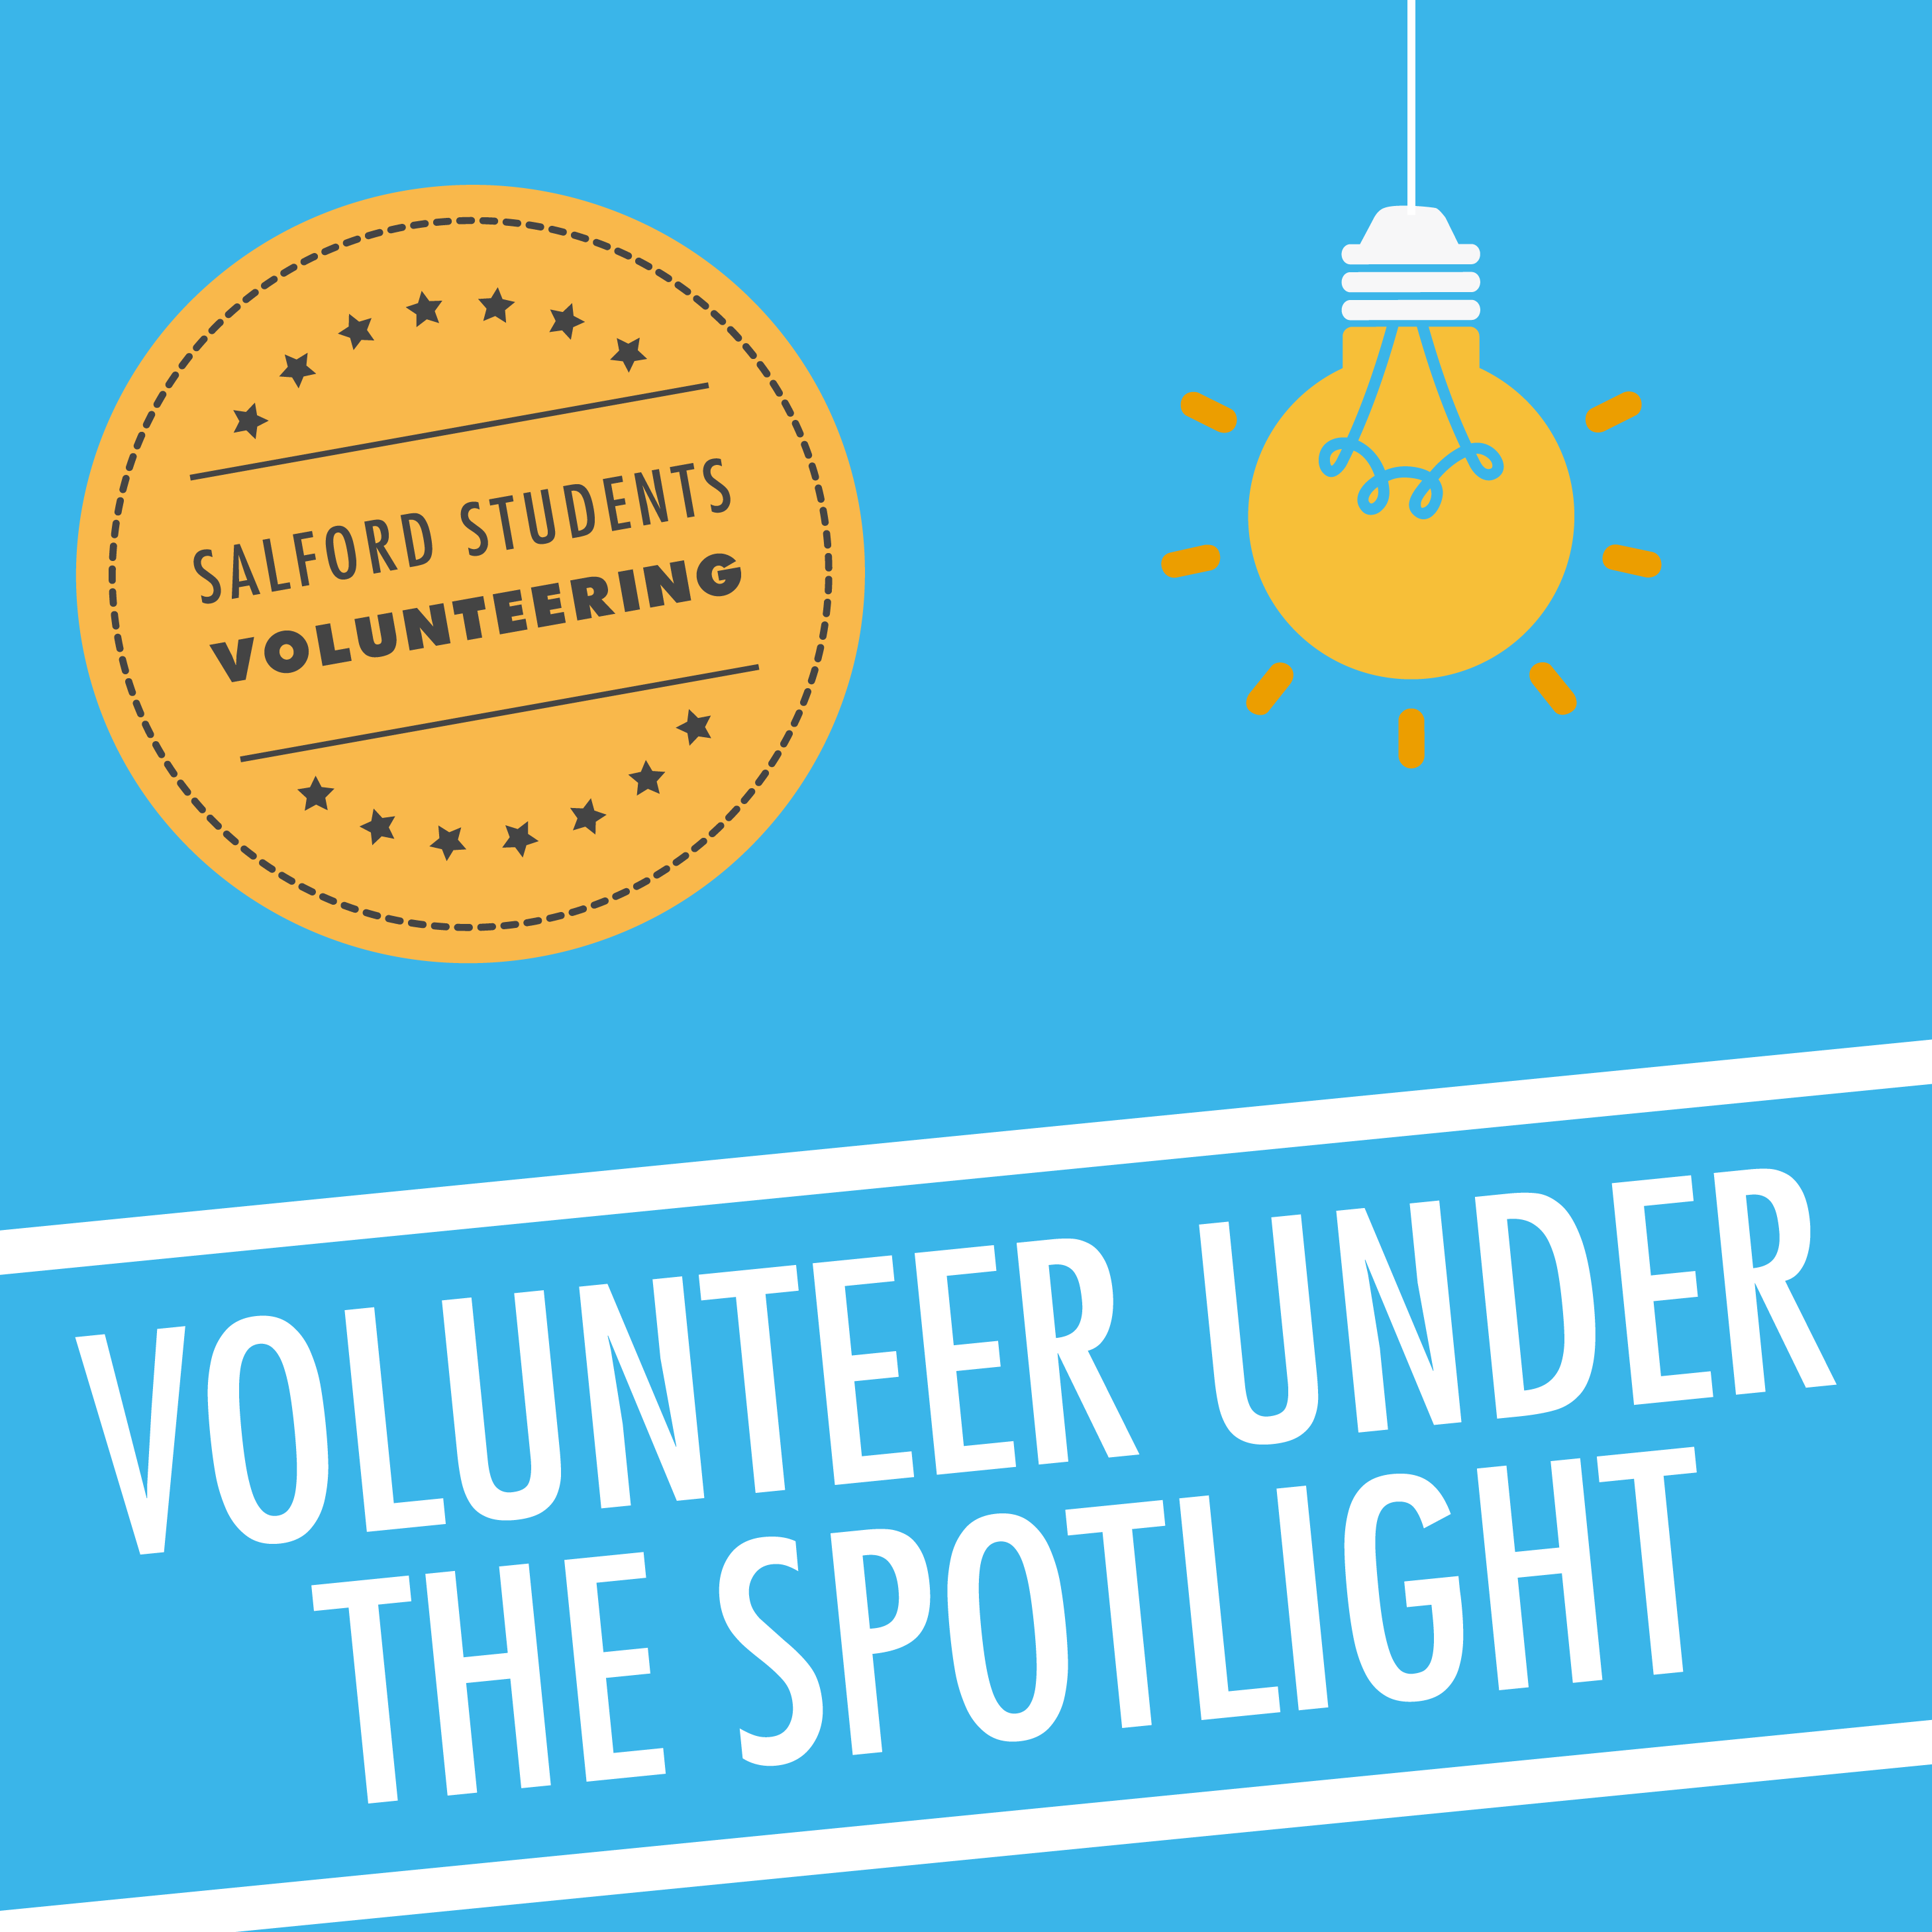 Volunteer under the Spotlight